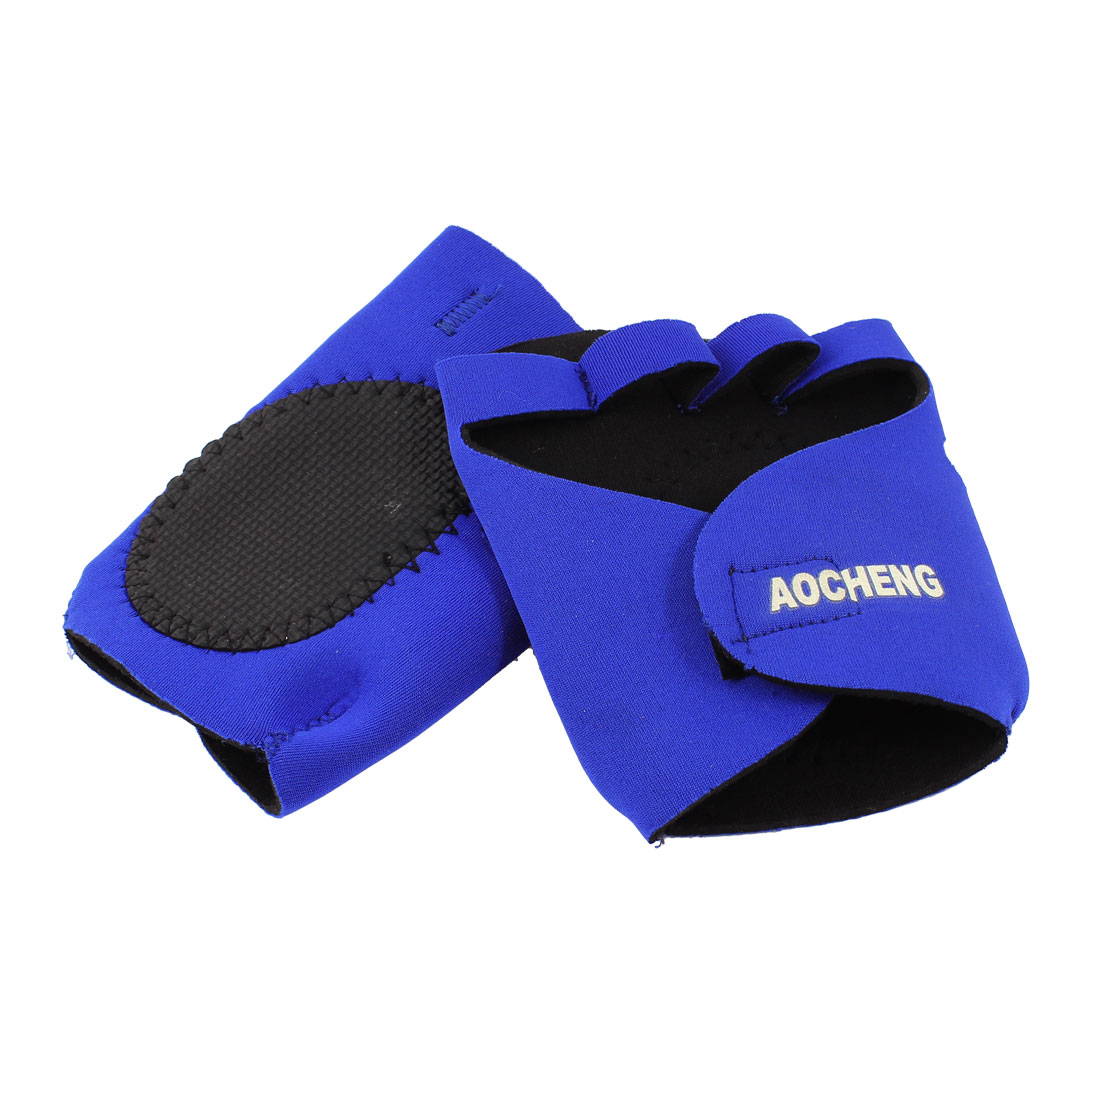 Neoprene Boxer Half Finger Boxing Sandbags Gloves Pair Blue Black